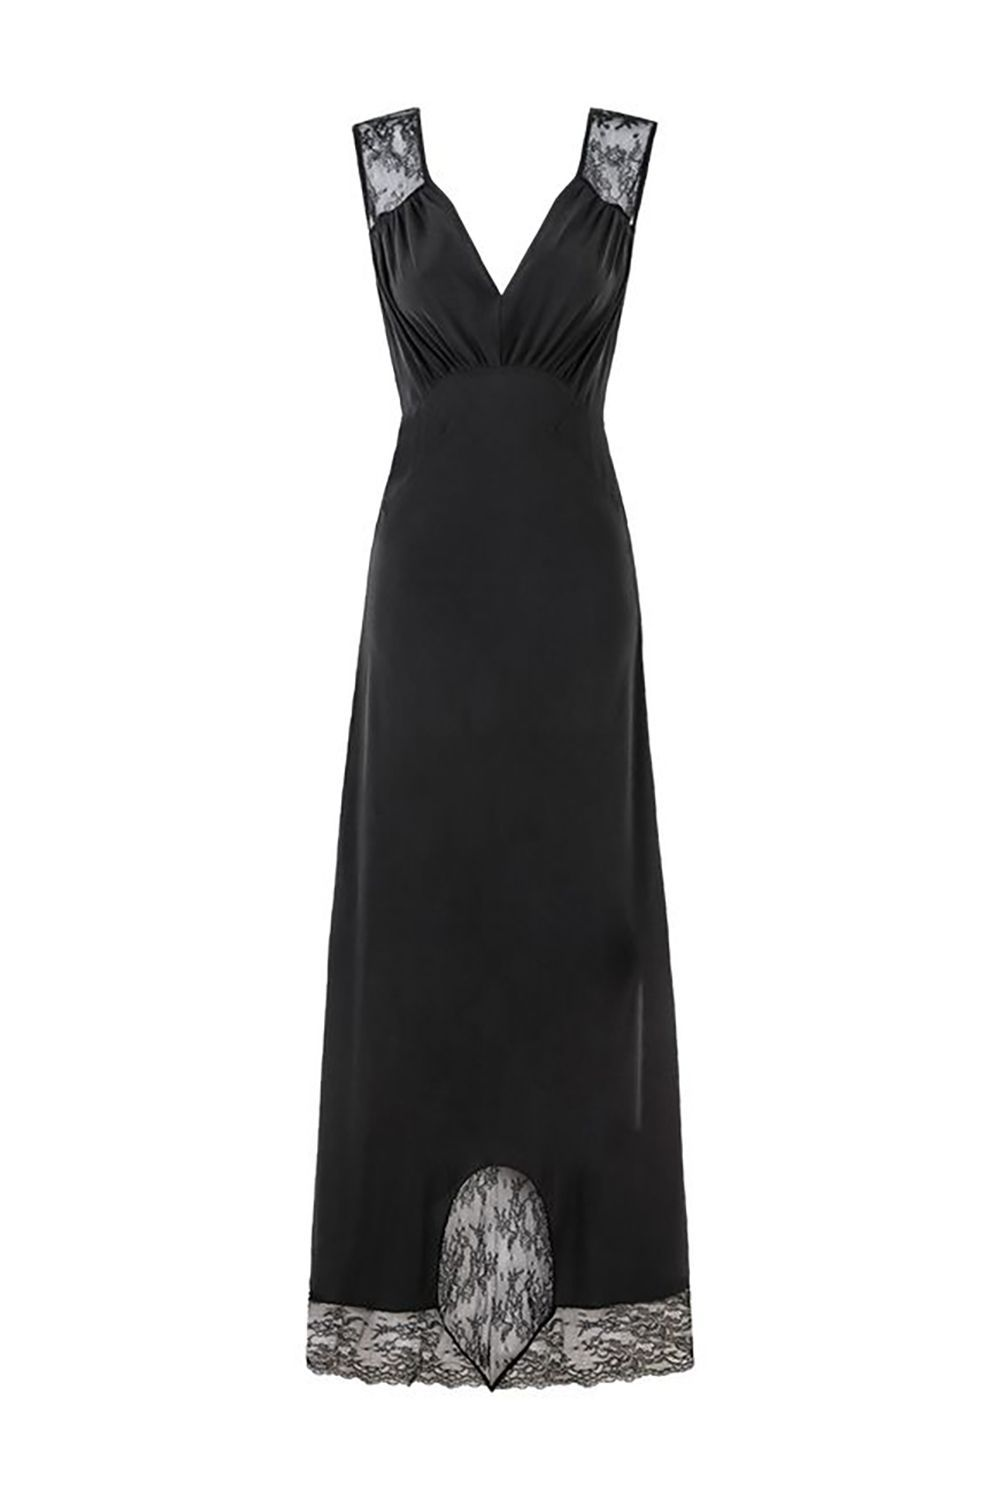 Most Elegant Lace Black Dress Rouje rouje.com €275.00 SHOP IT A classic black dress that can be worn a hundred times is always a good idea. Here, a particularly brilliant one from French label Rouje with lace details and a universally flattering silhouette.